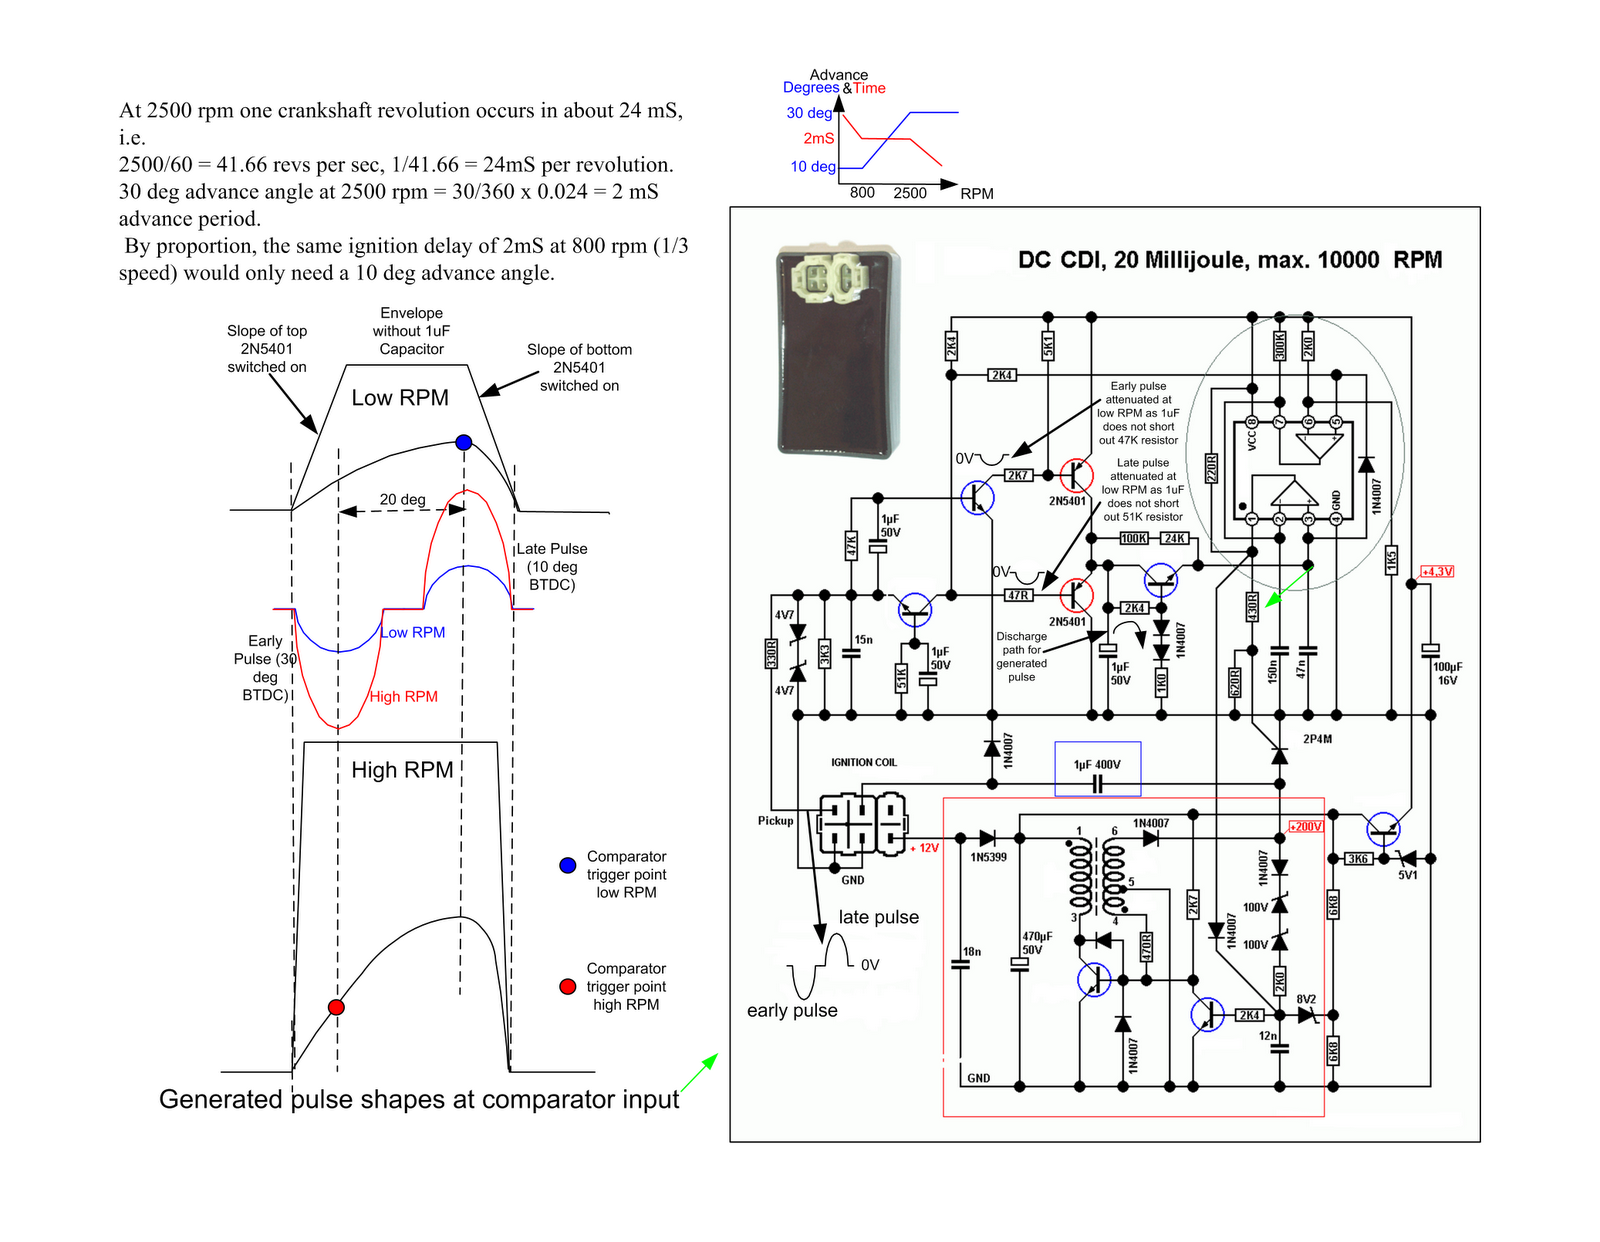 cdi diagram raider 150 cdi image wiring diagram yamaha raider engine diagram yamaha wiring diagrams on cdi diagram raider 150